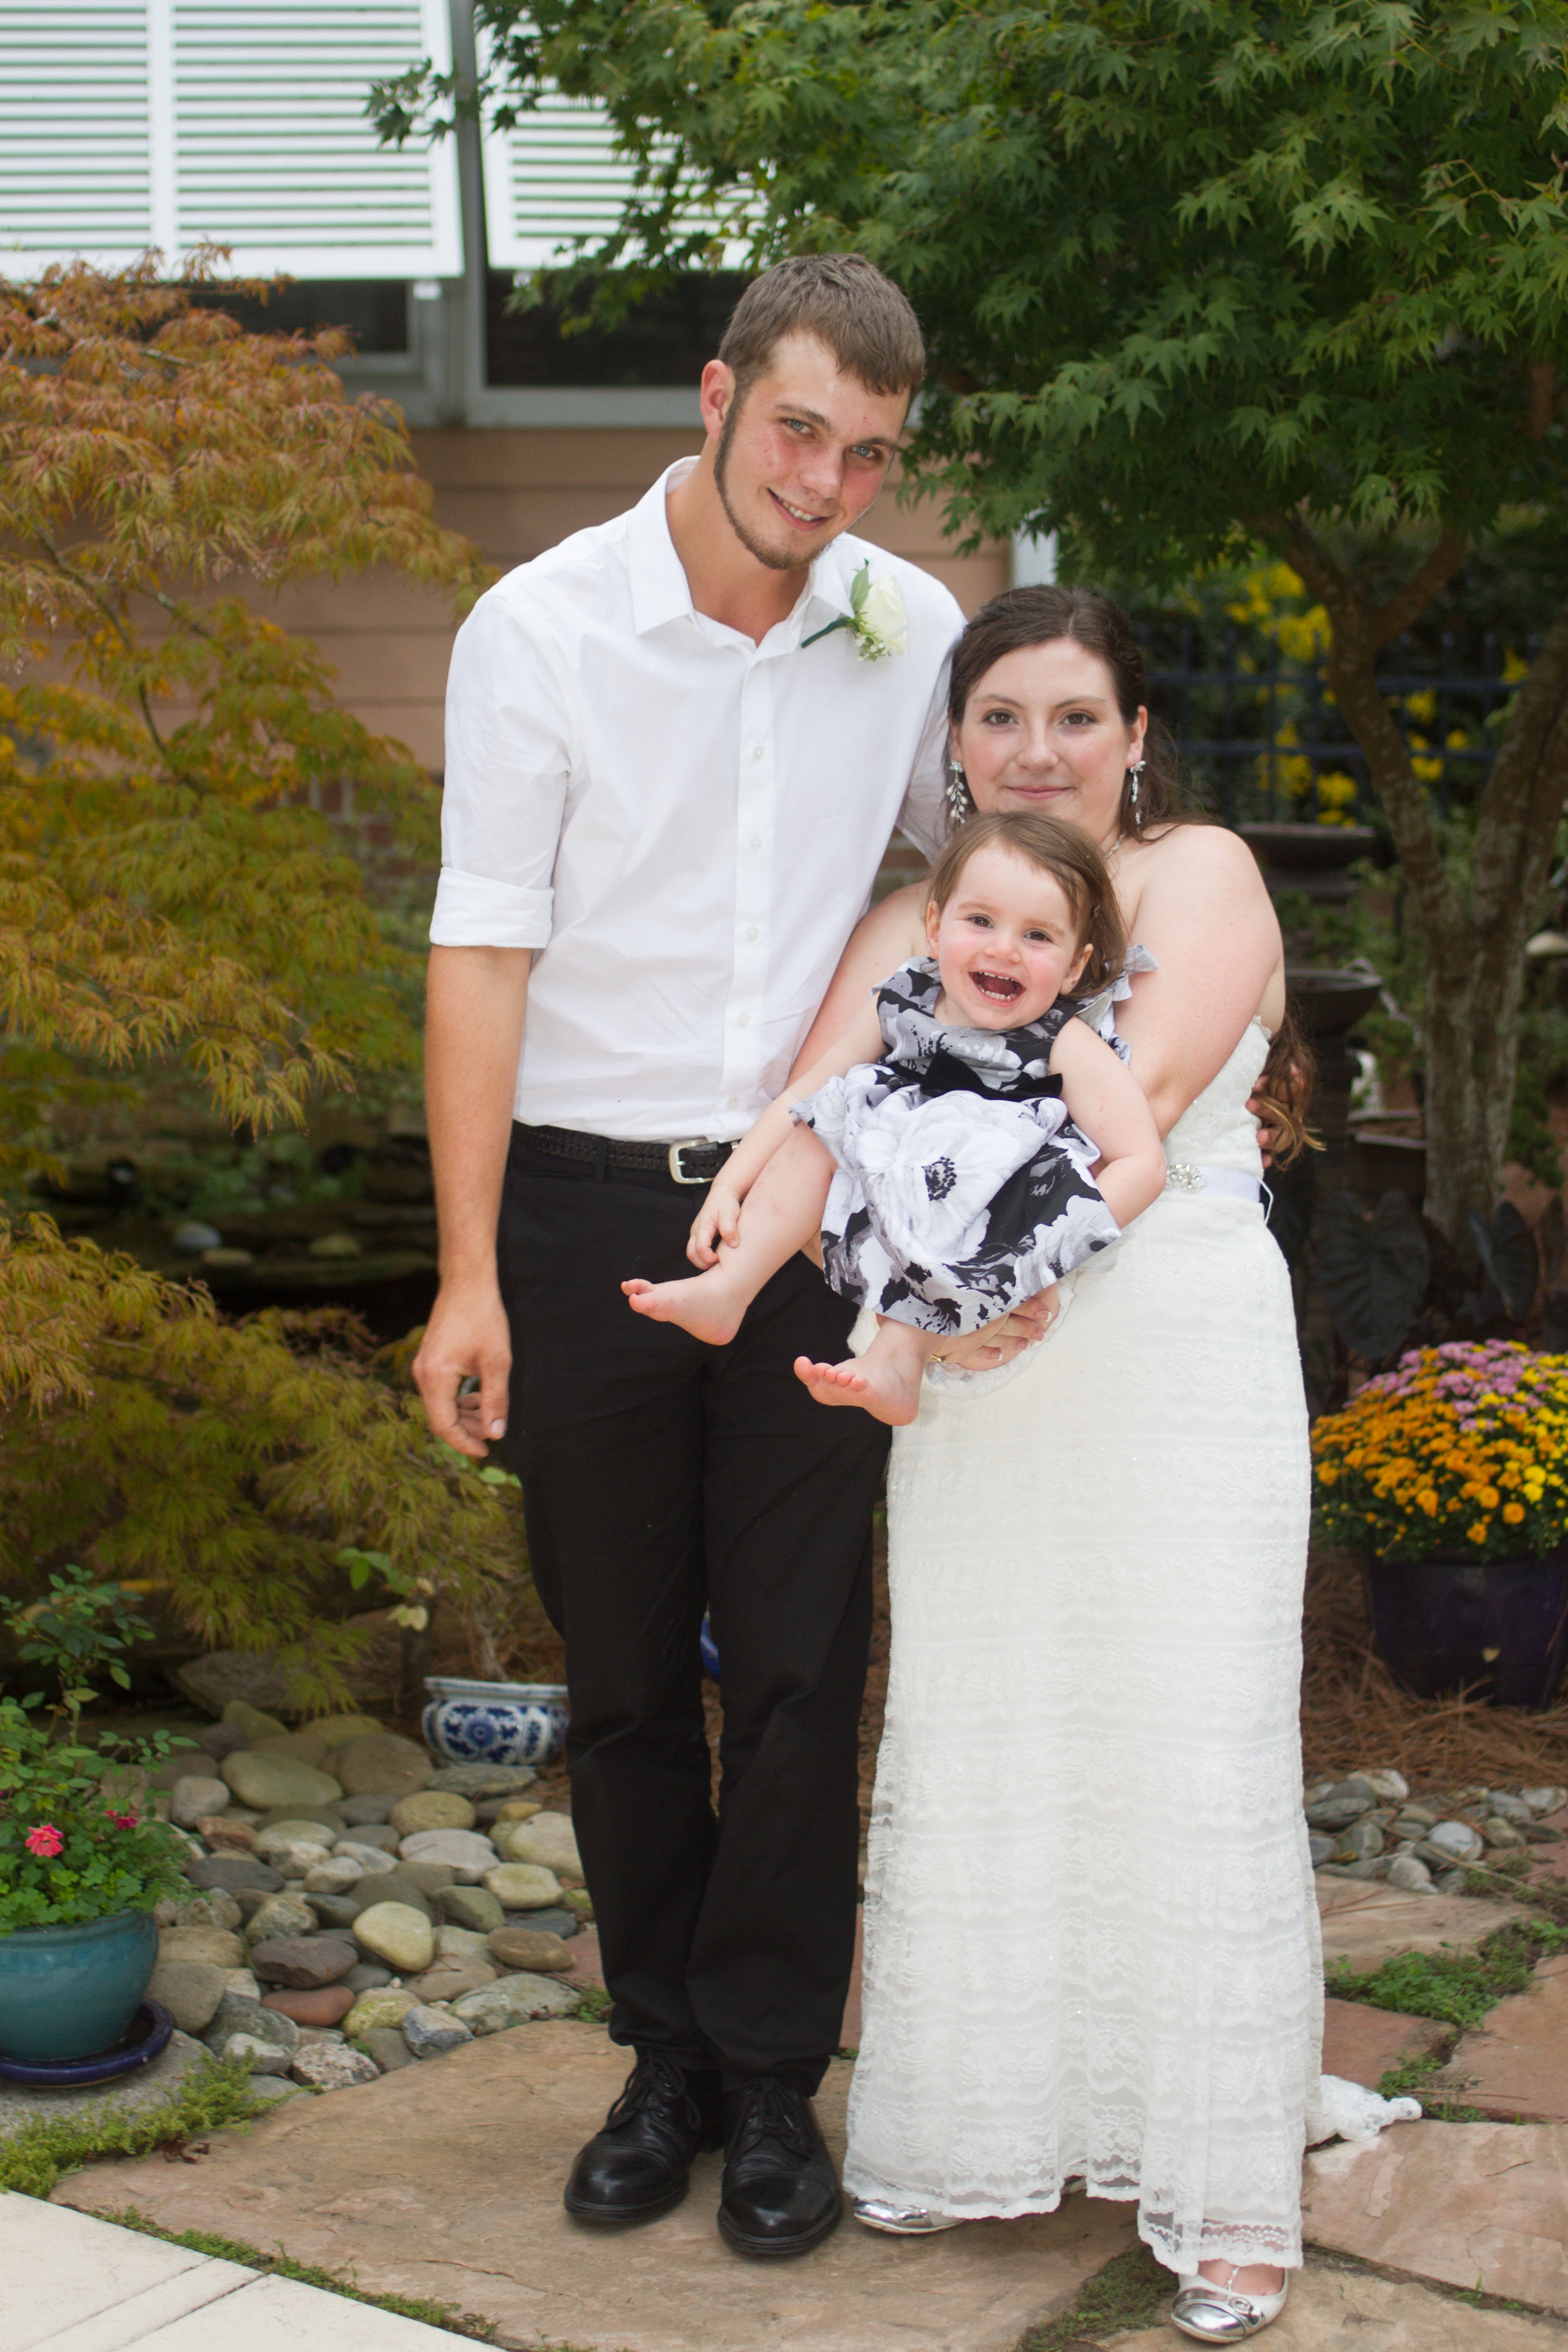 Codie and Steven - Reception (137 of 147).jpg